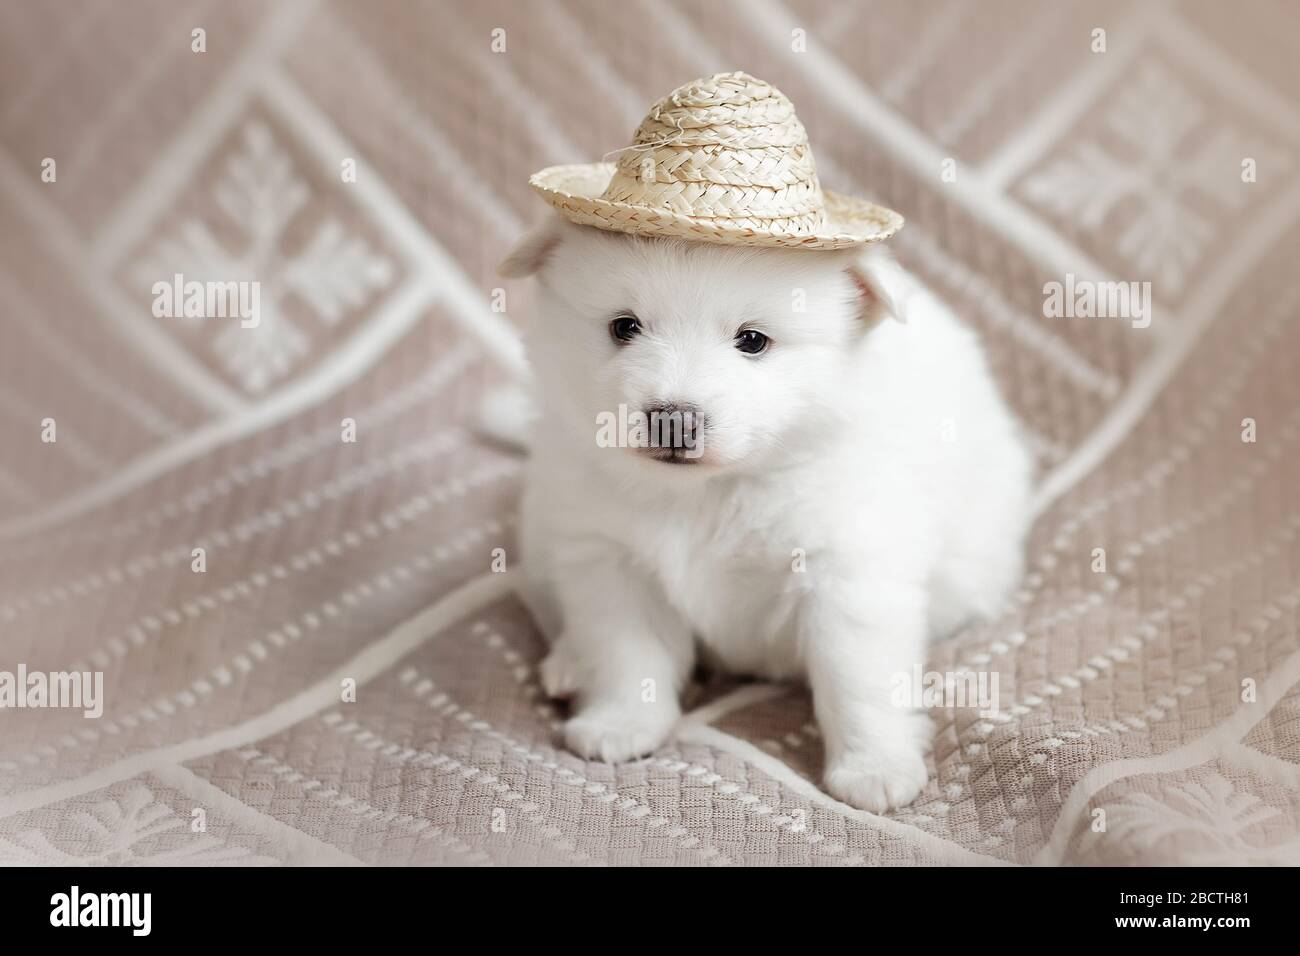 Cute Adorable Fluffy White Spitz Dog Puppy Best Pet Friend For Kids Stock Photo Alamy